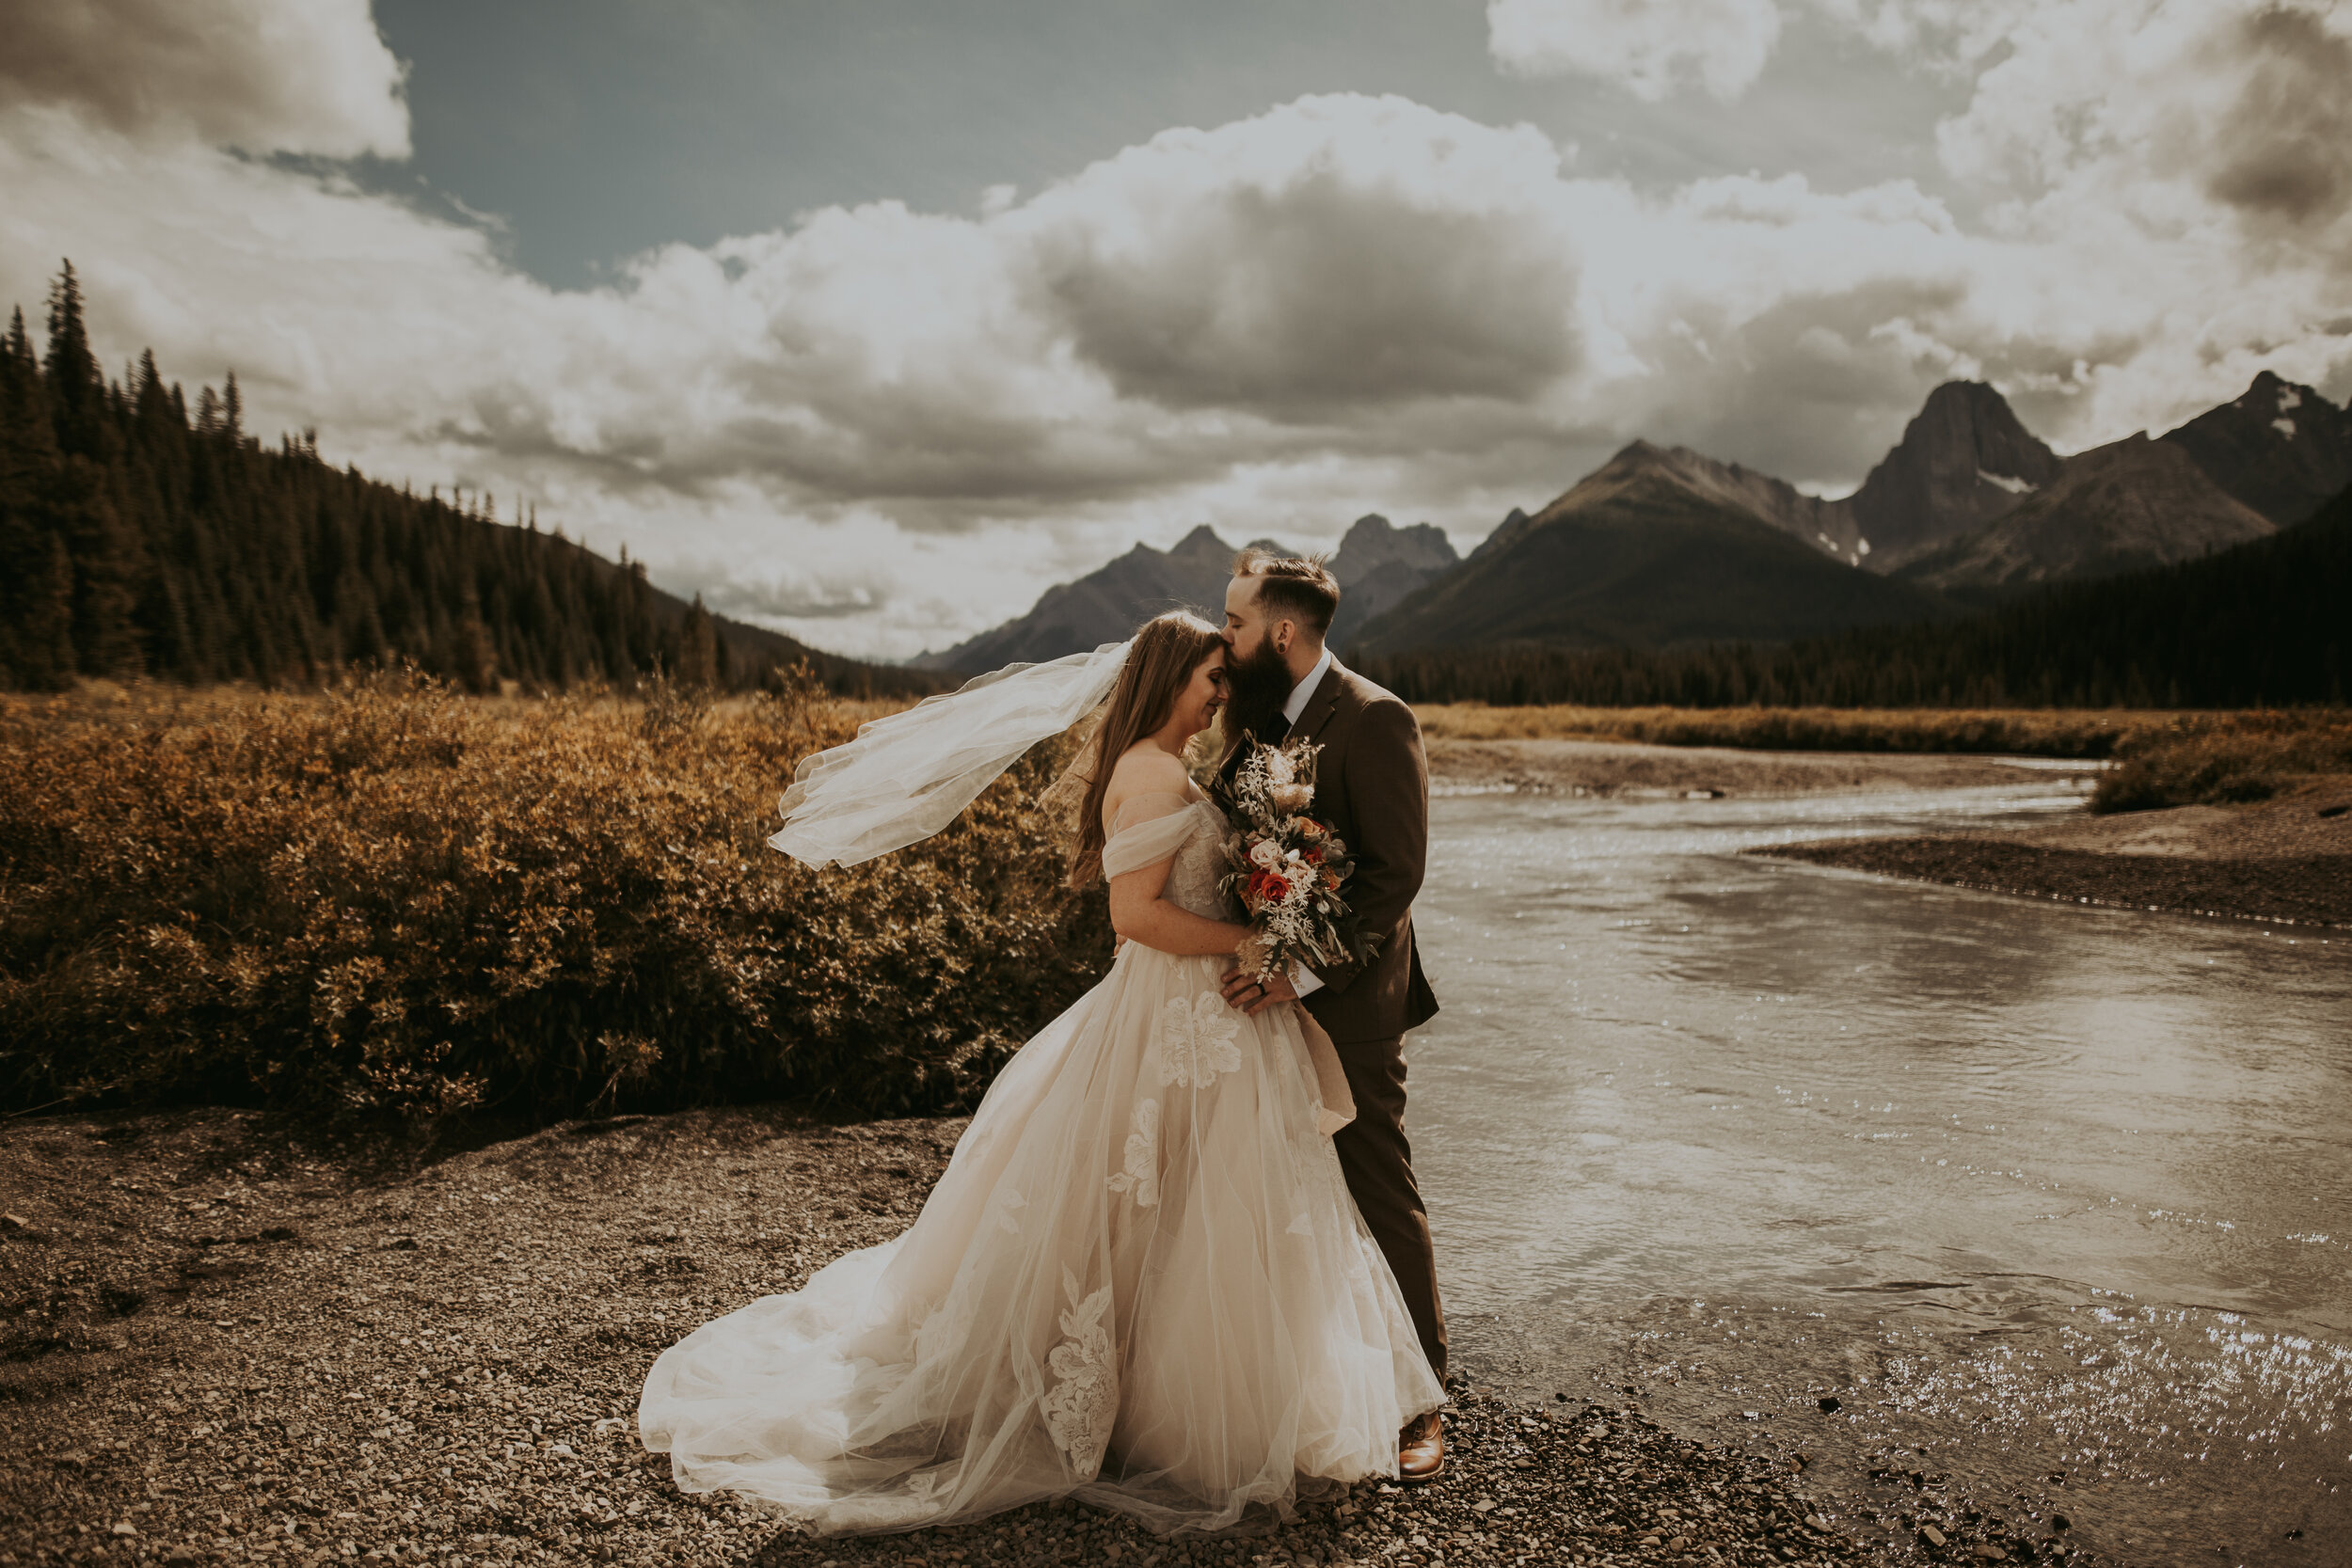 Banff Engagement session, Banff photographer, Banff elopement, Banff Photography, Banff elopement photographer